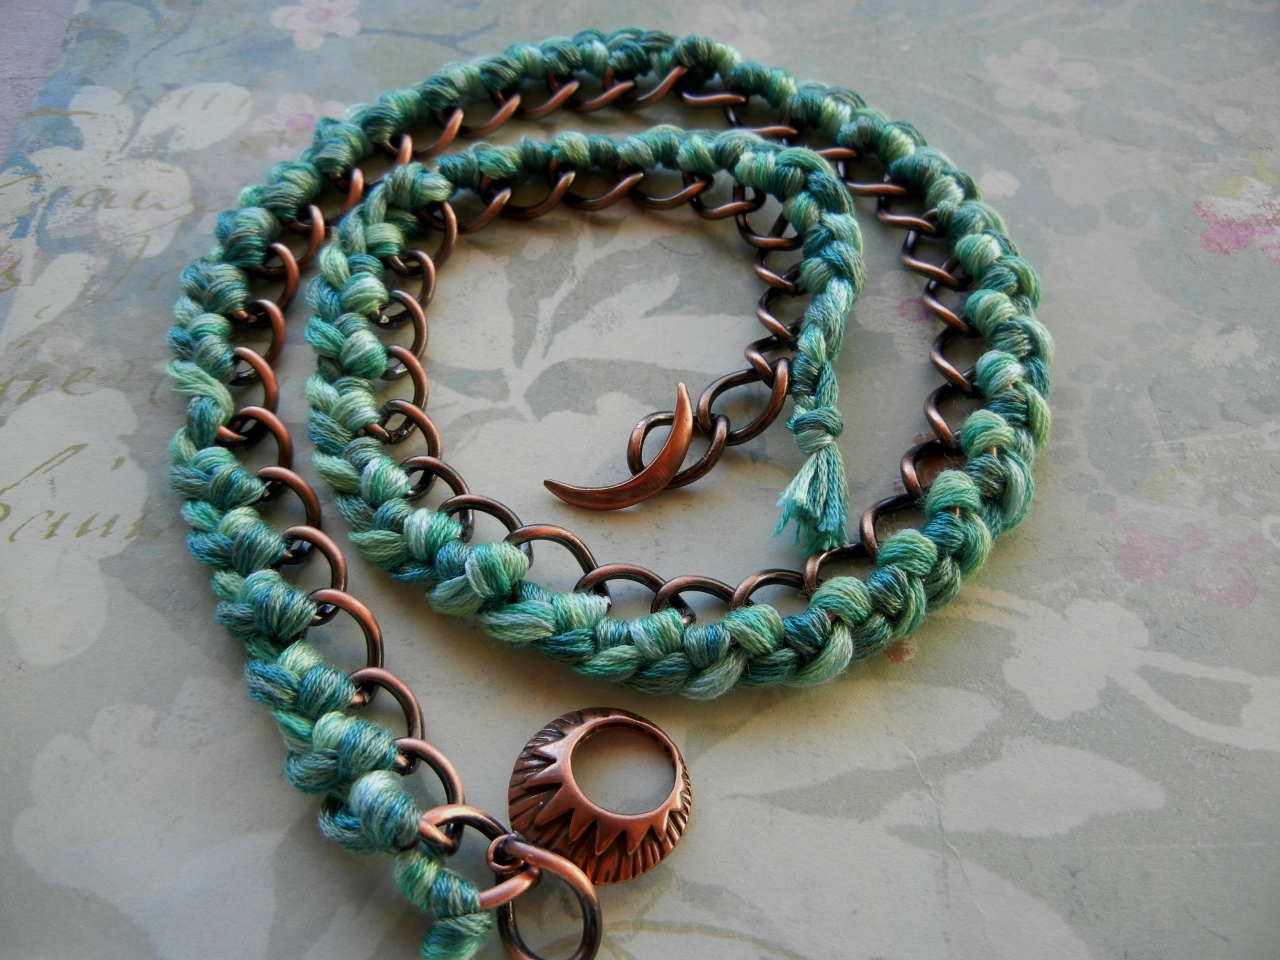 antique challenge rosetta dragon bracelet copper day five earrings in weave tail hringas